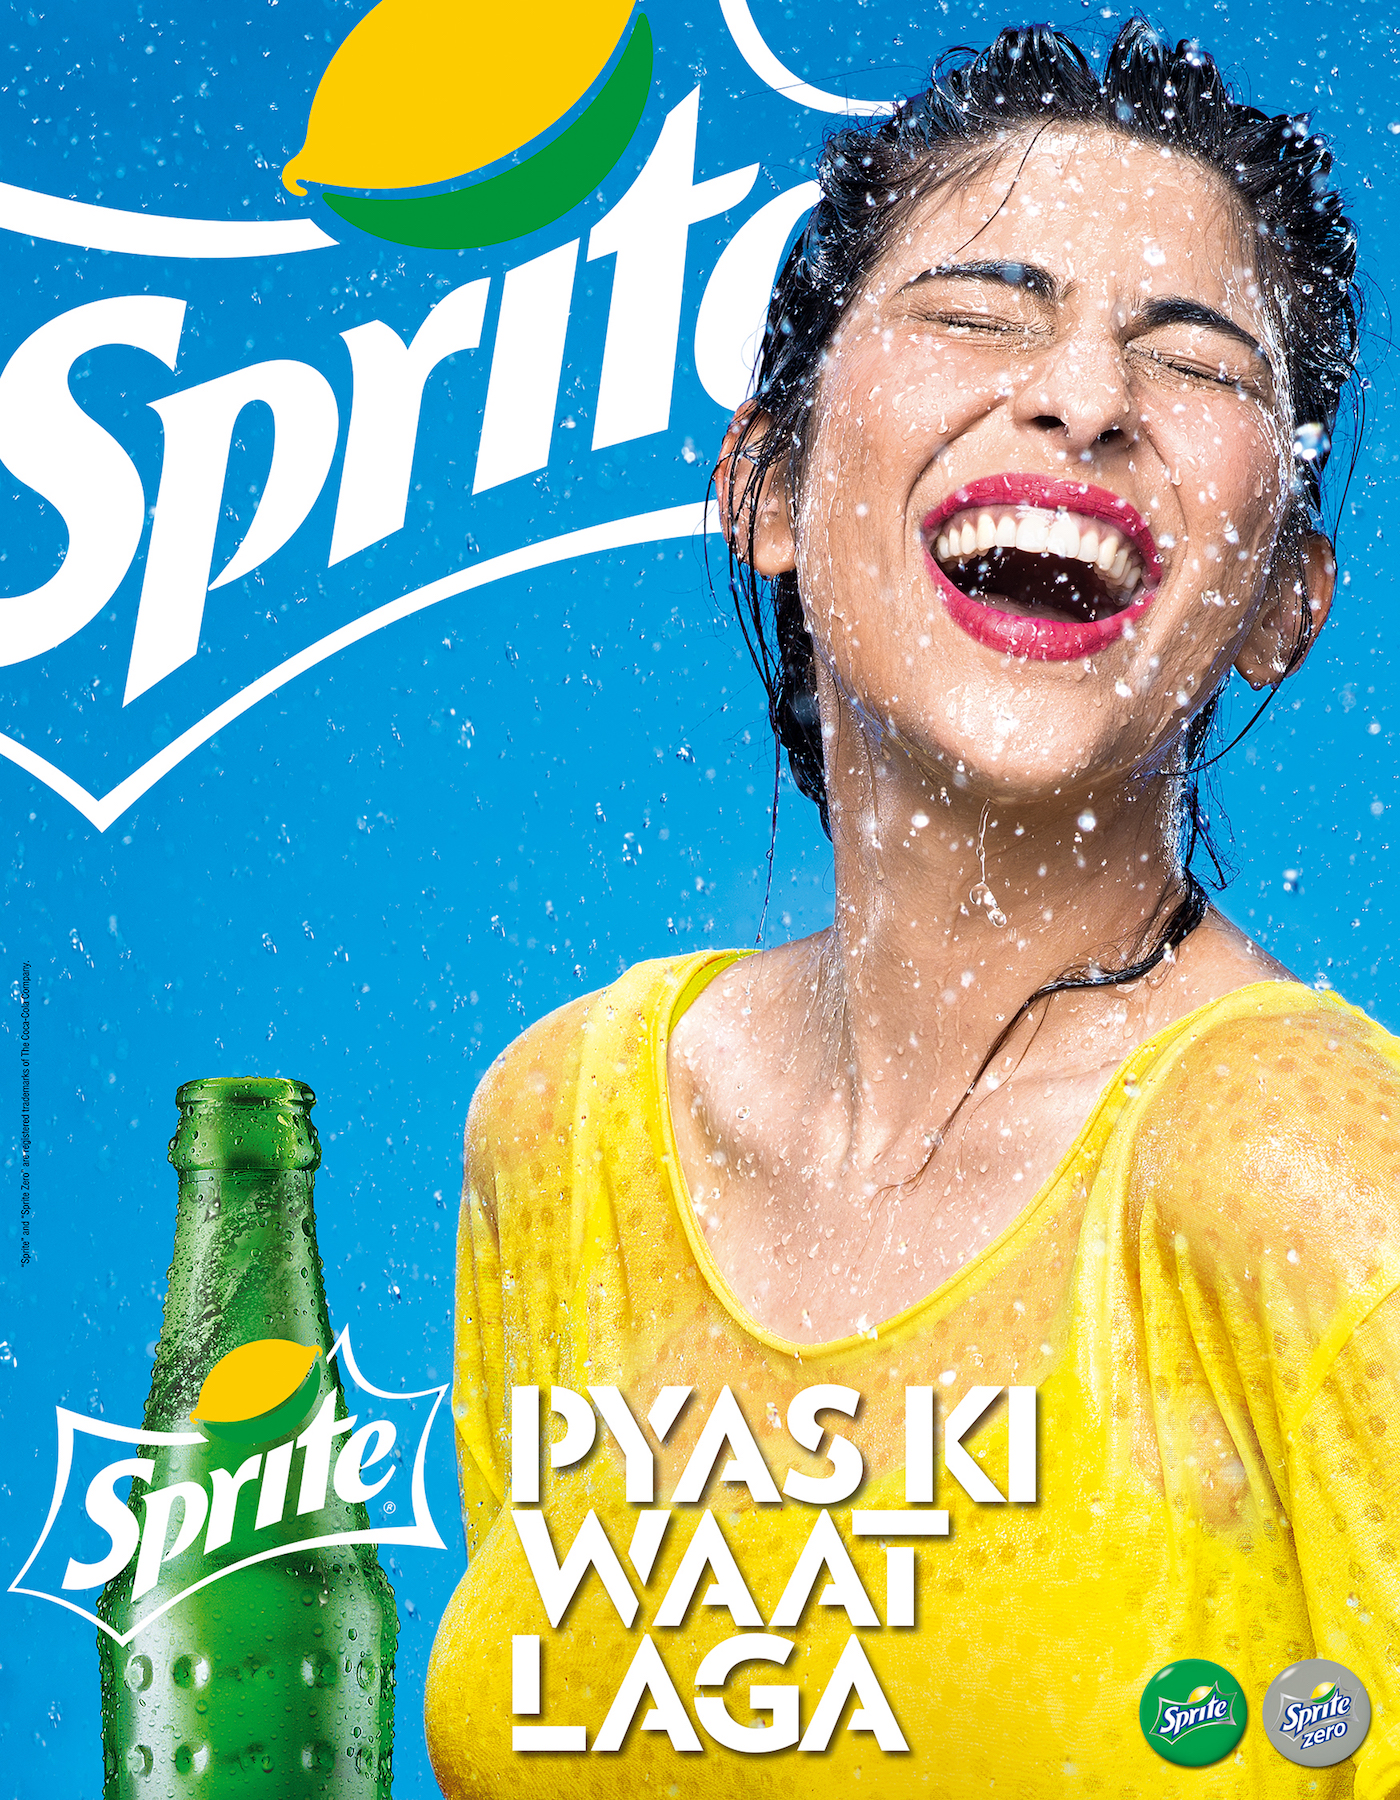 Sprite_Refreshment_2014-Poster_Girl-Artwork.jpg